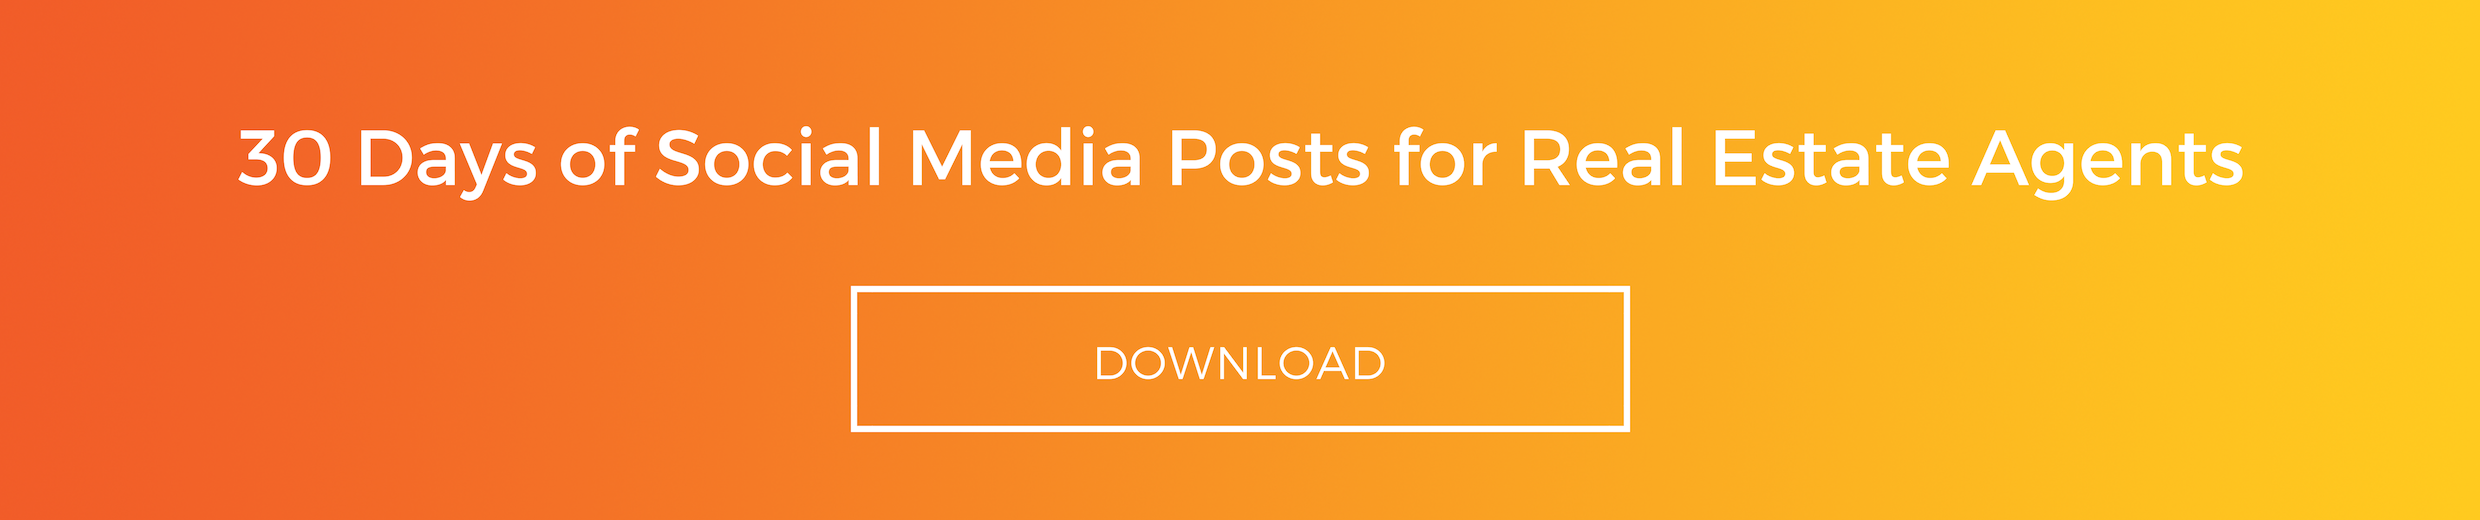 Download our social media posting tips for real estate agents